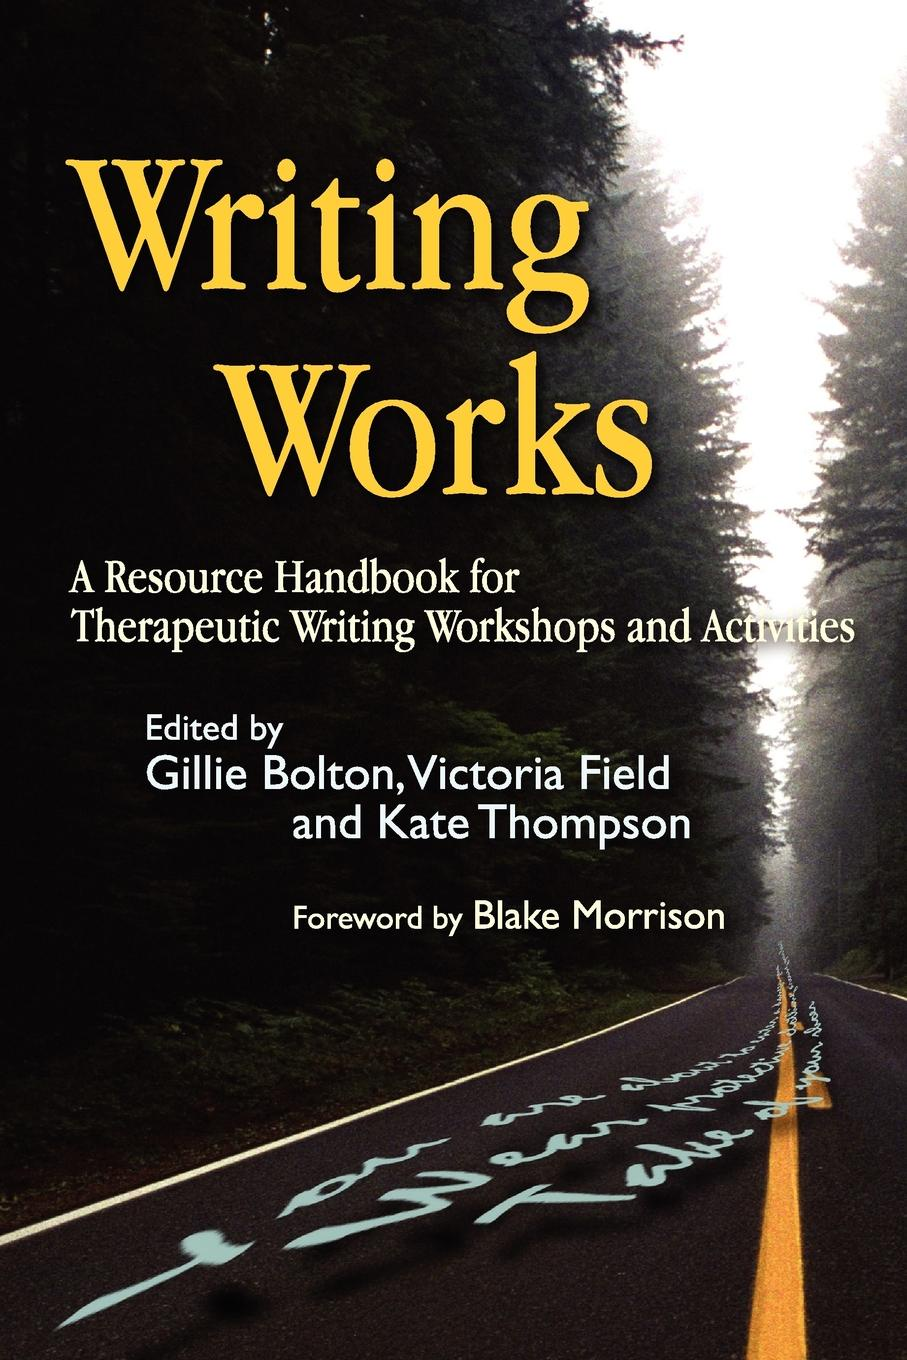 Writing Works. A Resource Handbook for Therapeutic Writing Workshops and Activities reichert janice m handbook of therapeutic antibodies